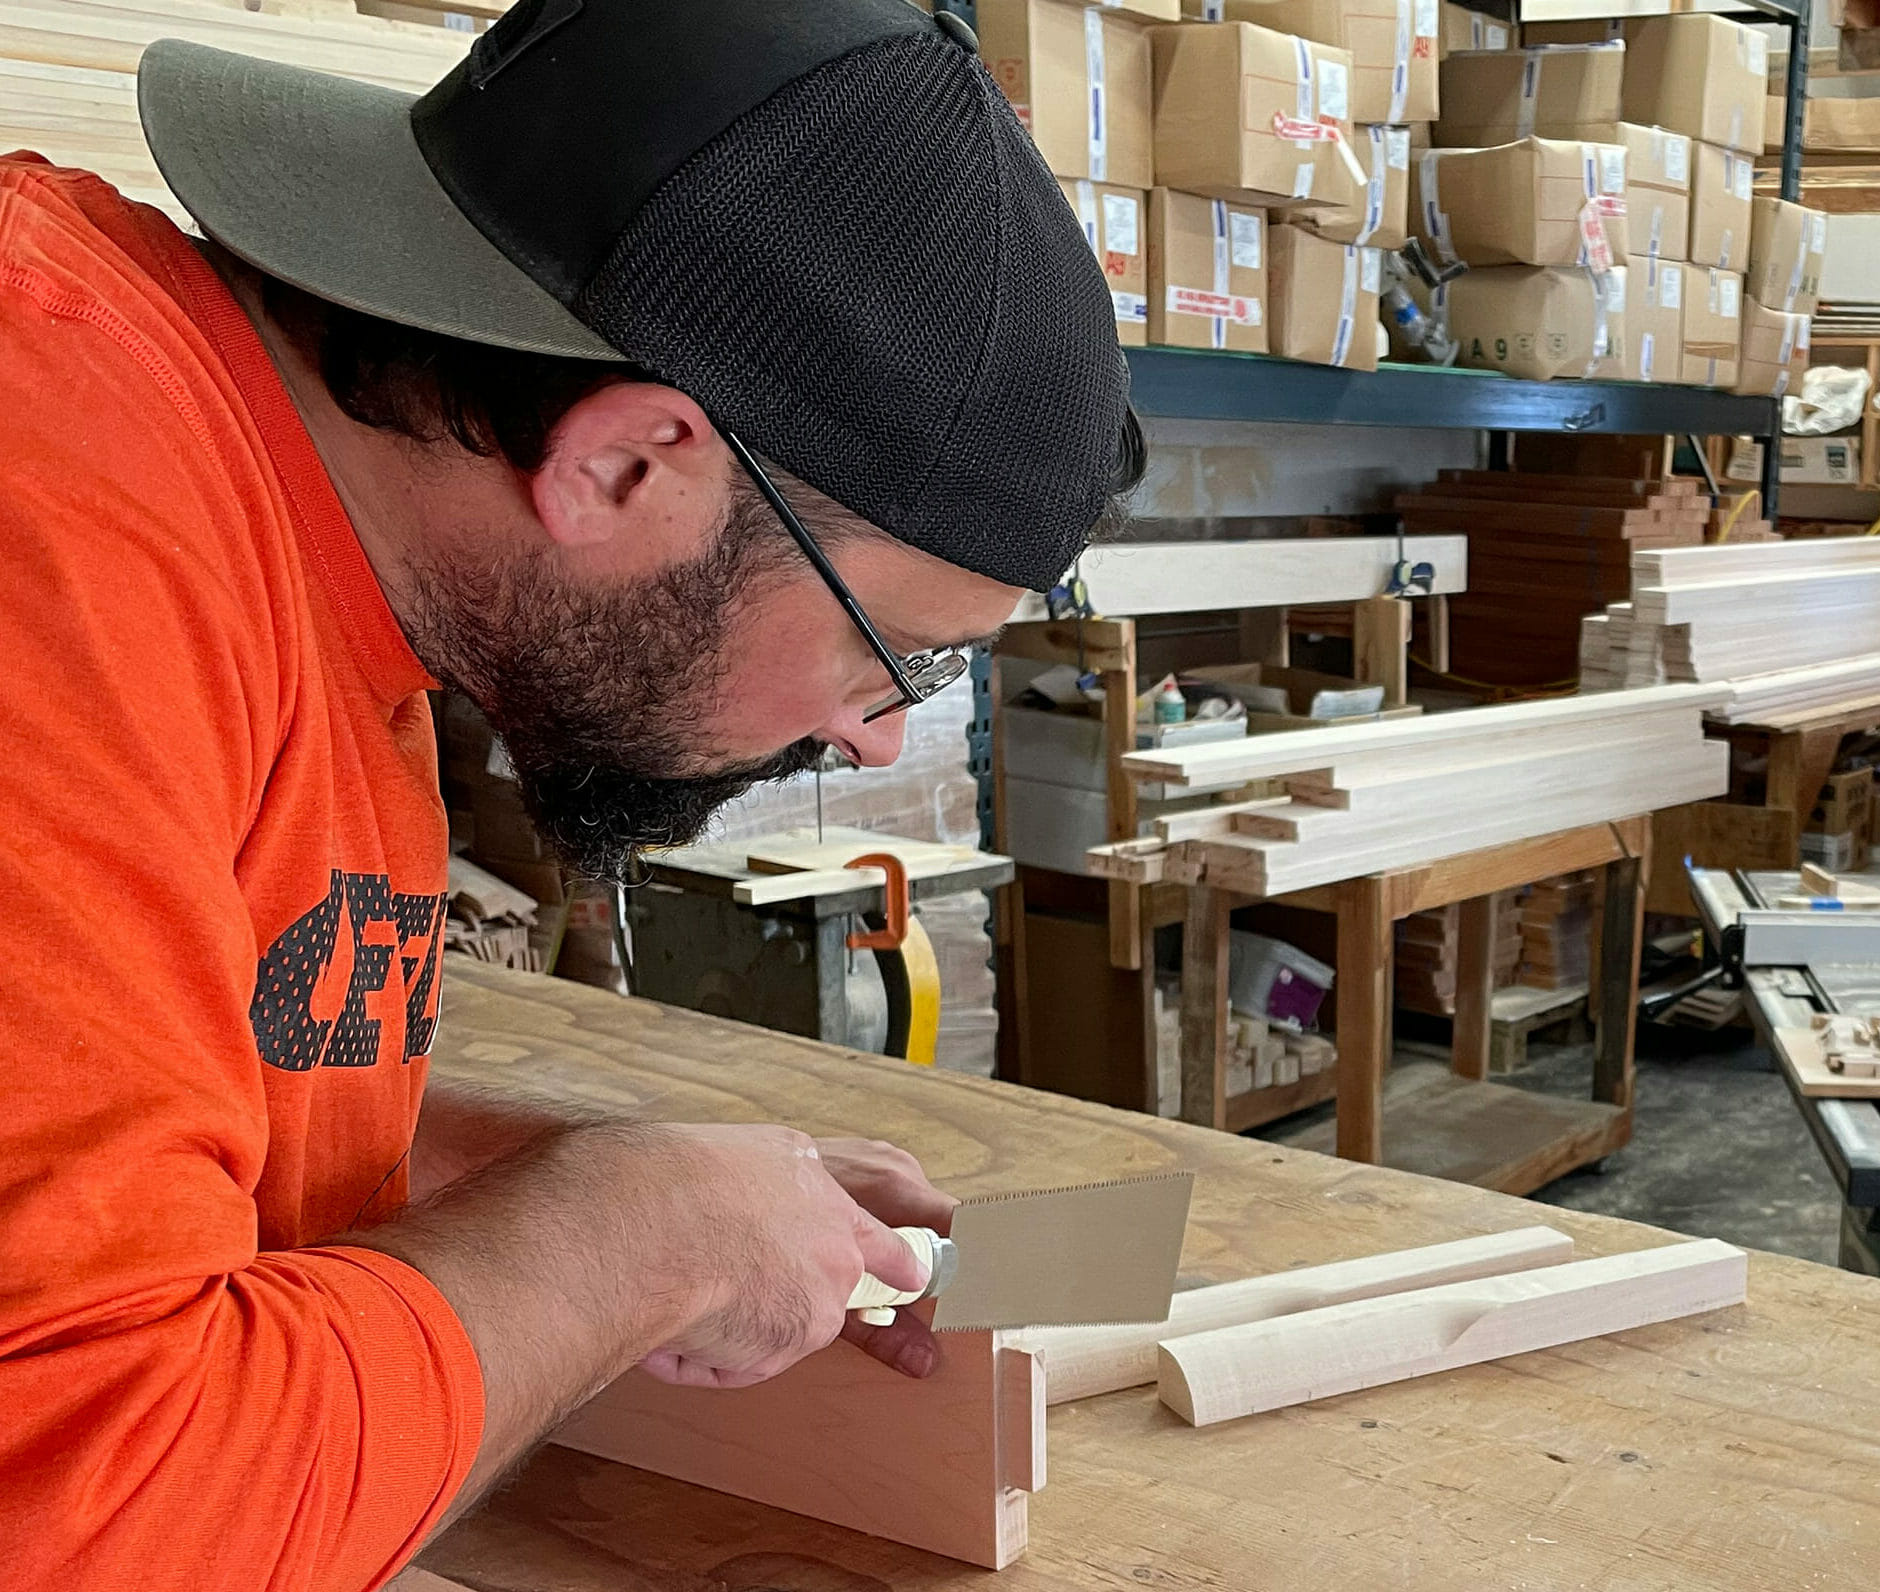 Marshall working on tenon for mortise joint